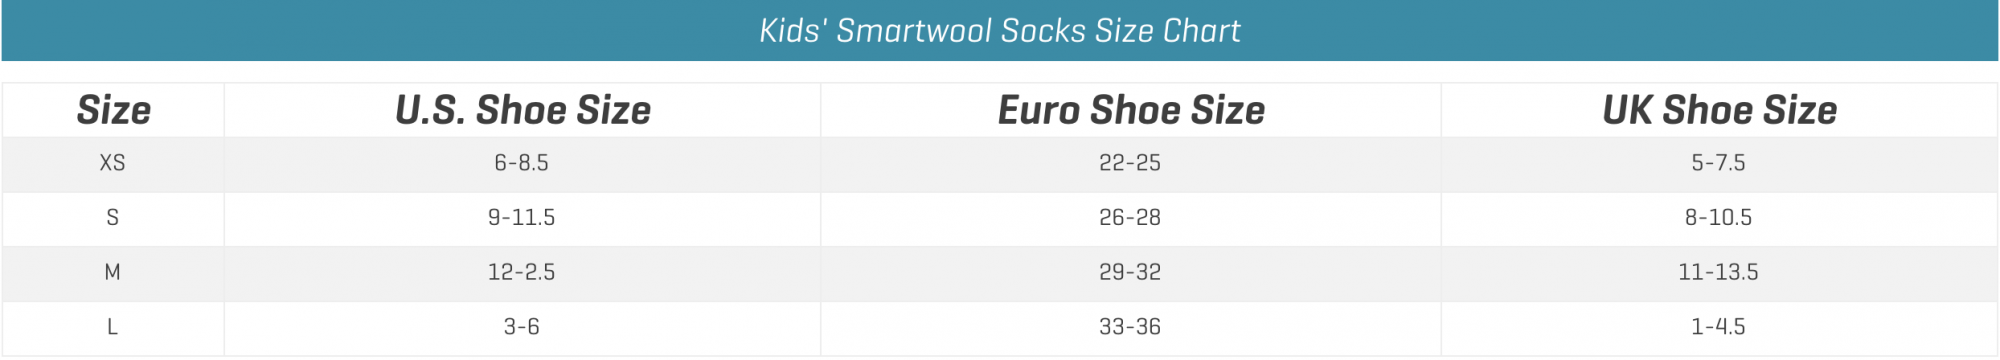 Smartwool Kid Socks